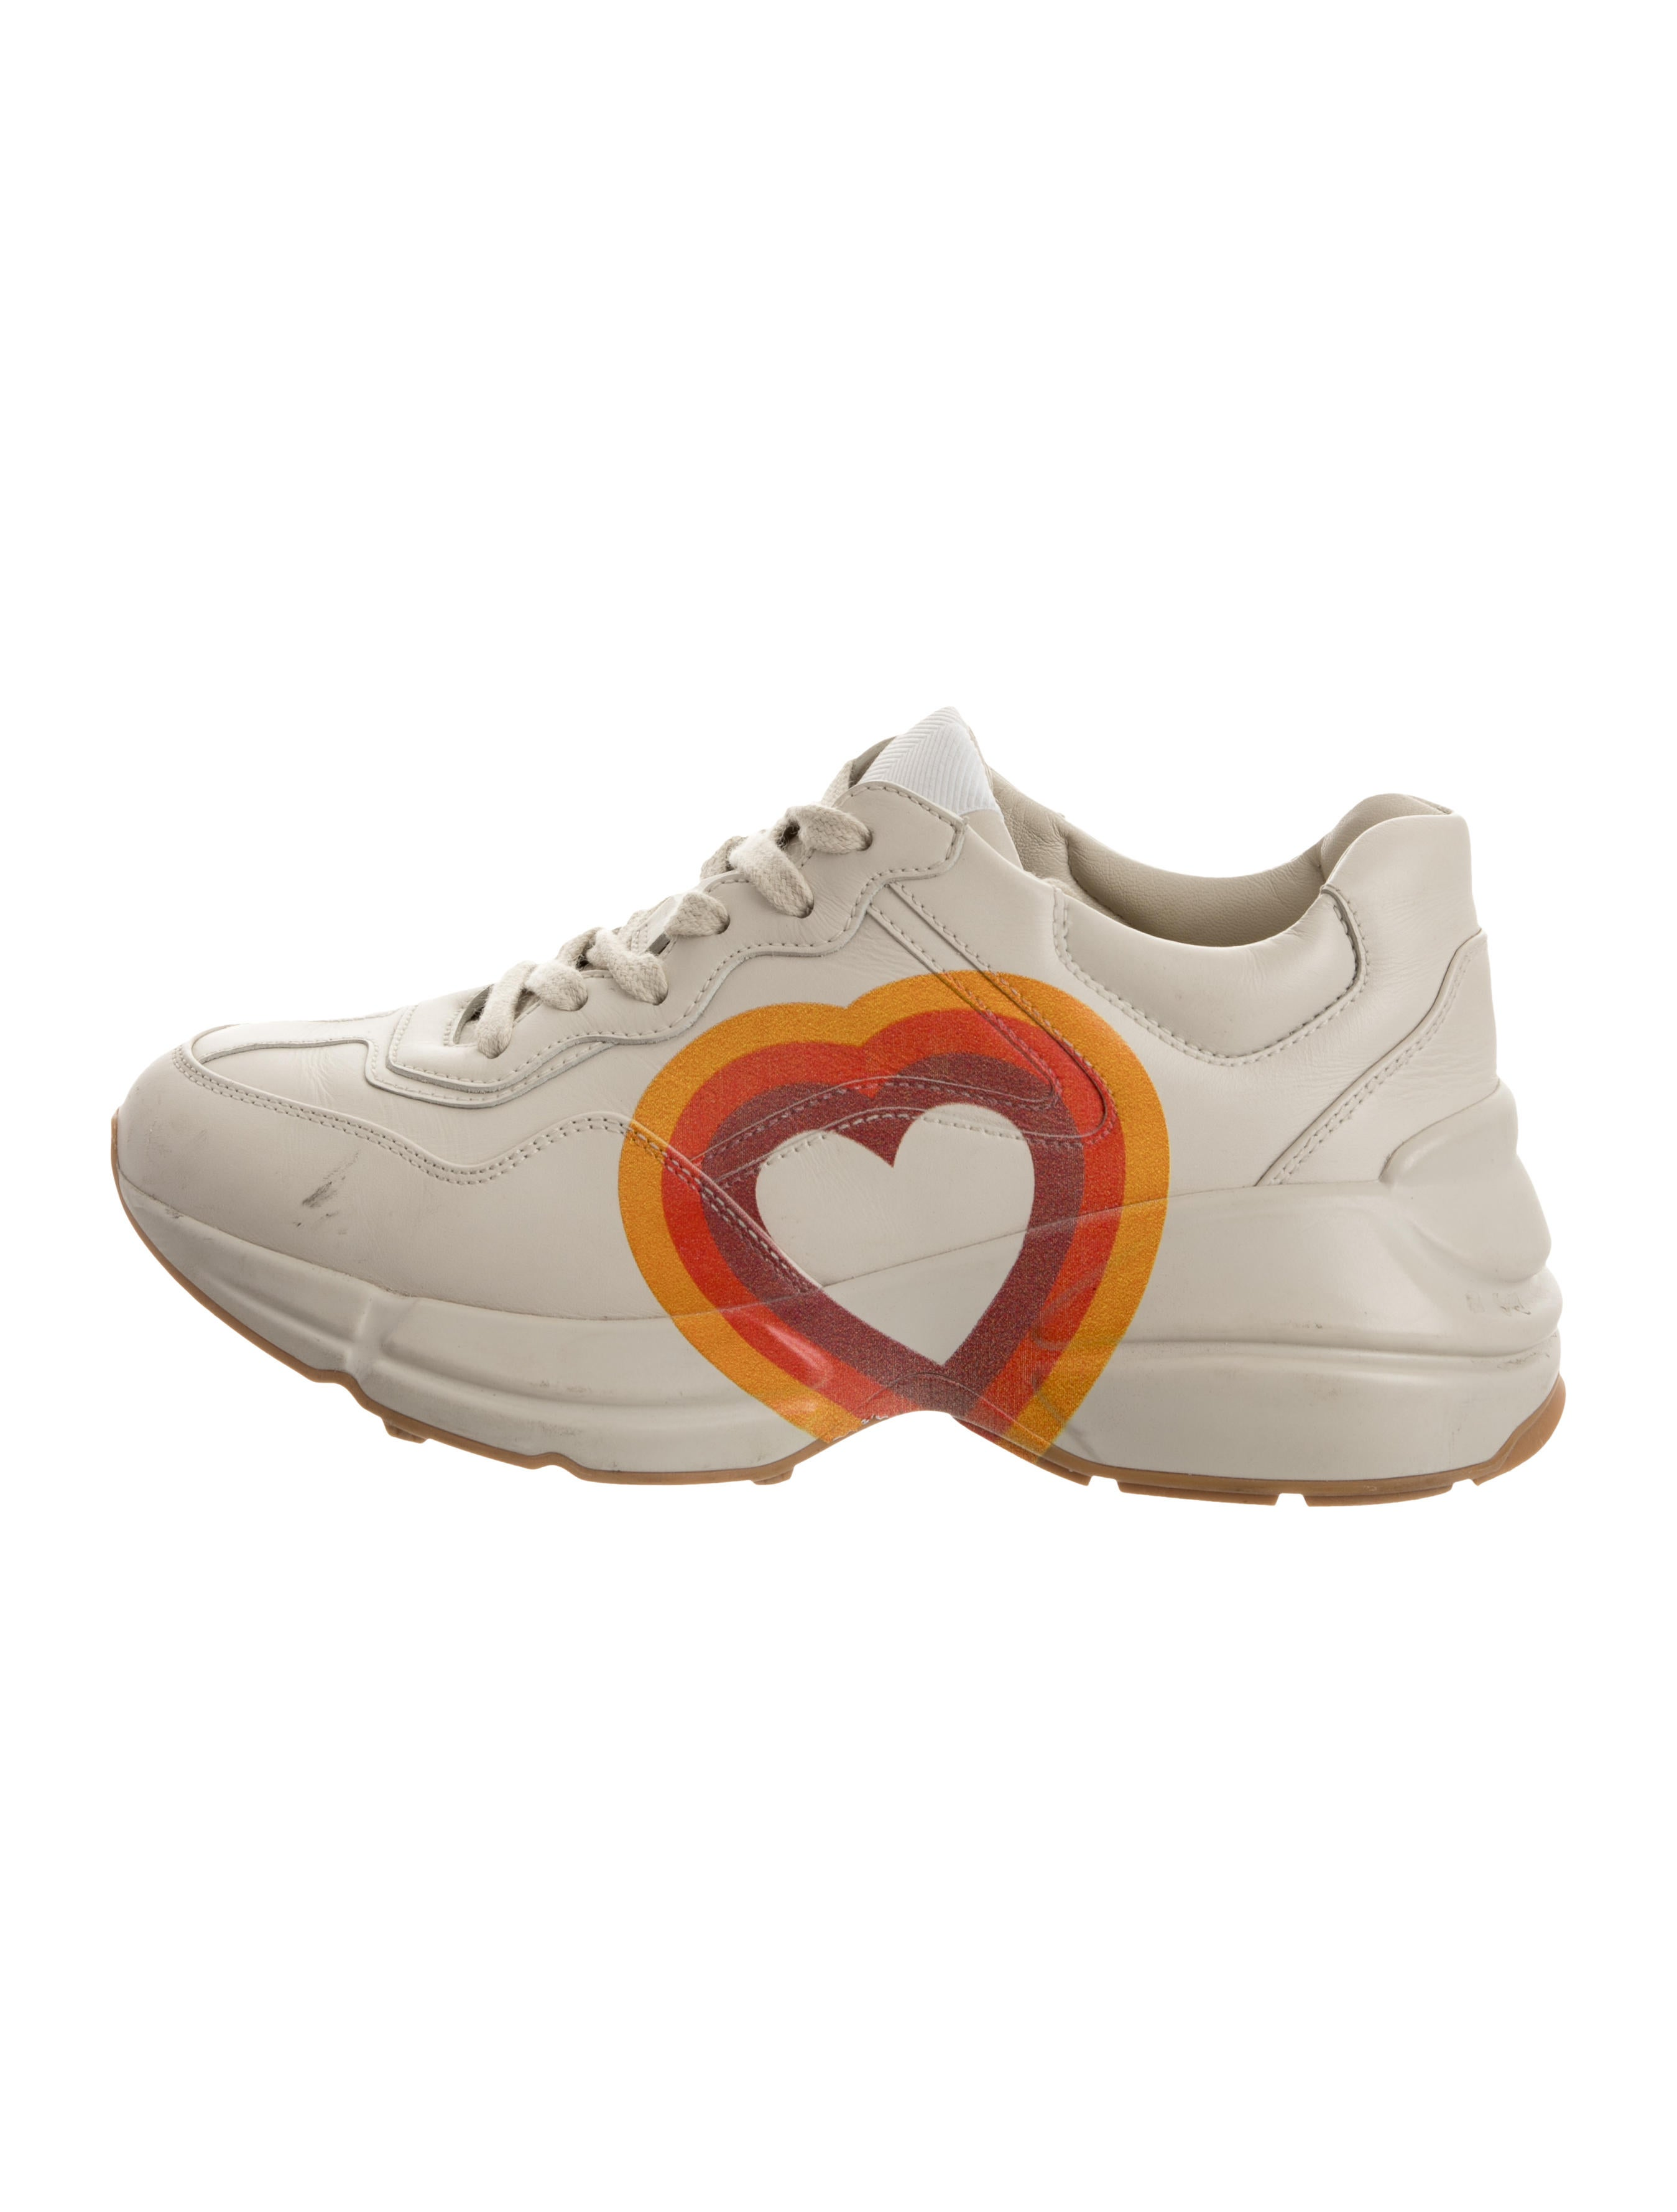 Gucci Rhyton Heart Sneakers - Shoes